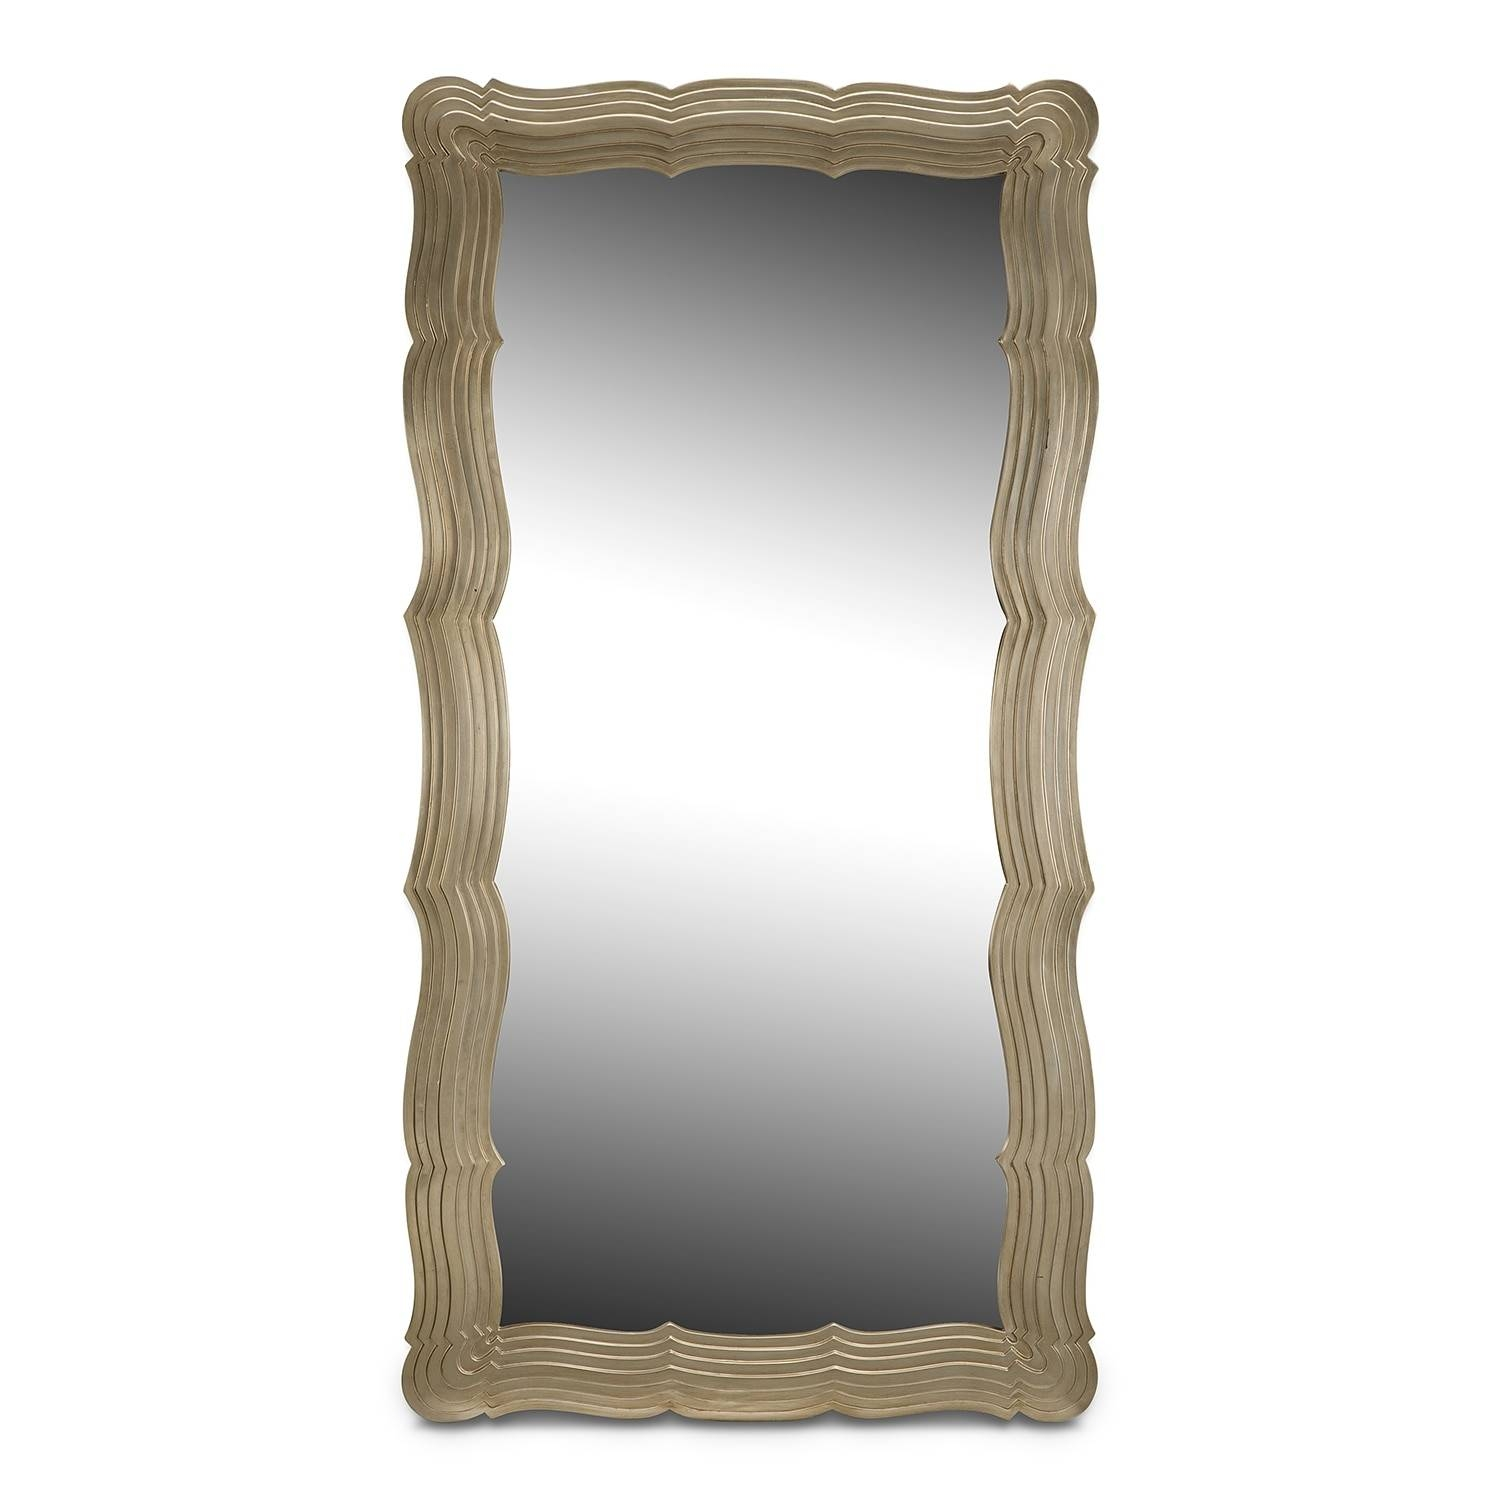 Wall & Floor Mirrors | Value City Furniture inside Silver Glitter Mirrors (Image 24 of 25)